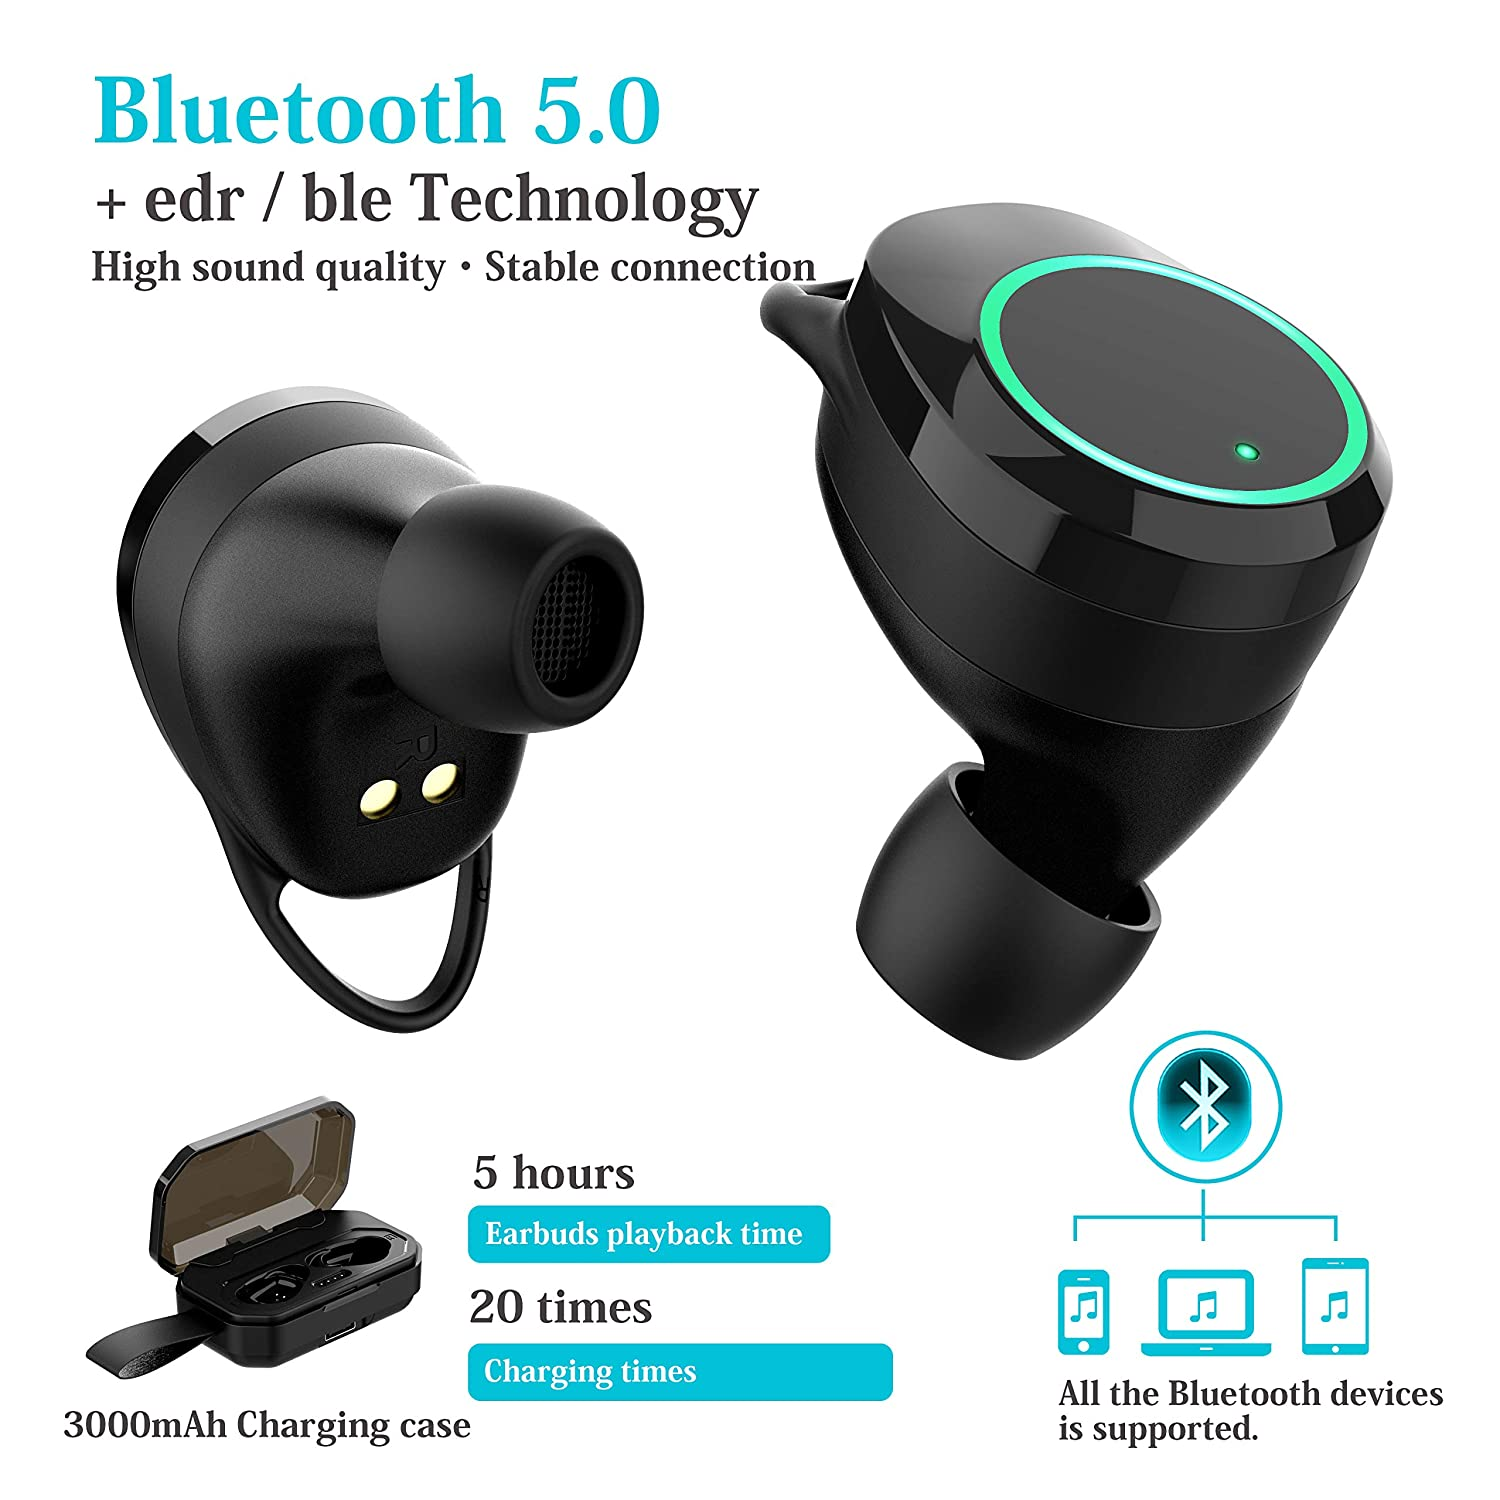 True Wireless Bluetooth Earbuds – Bluetooth 5.0 Headphones – IPX7 Waterproof – HD Sound Quality – Wireless Earphones with Mic and Charging Case Upgraded 2019